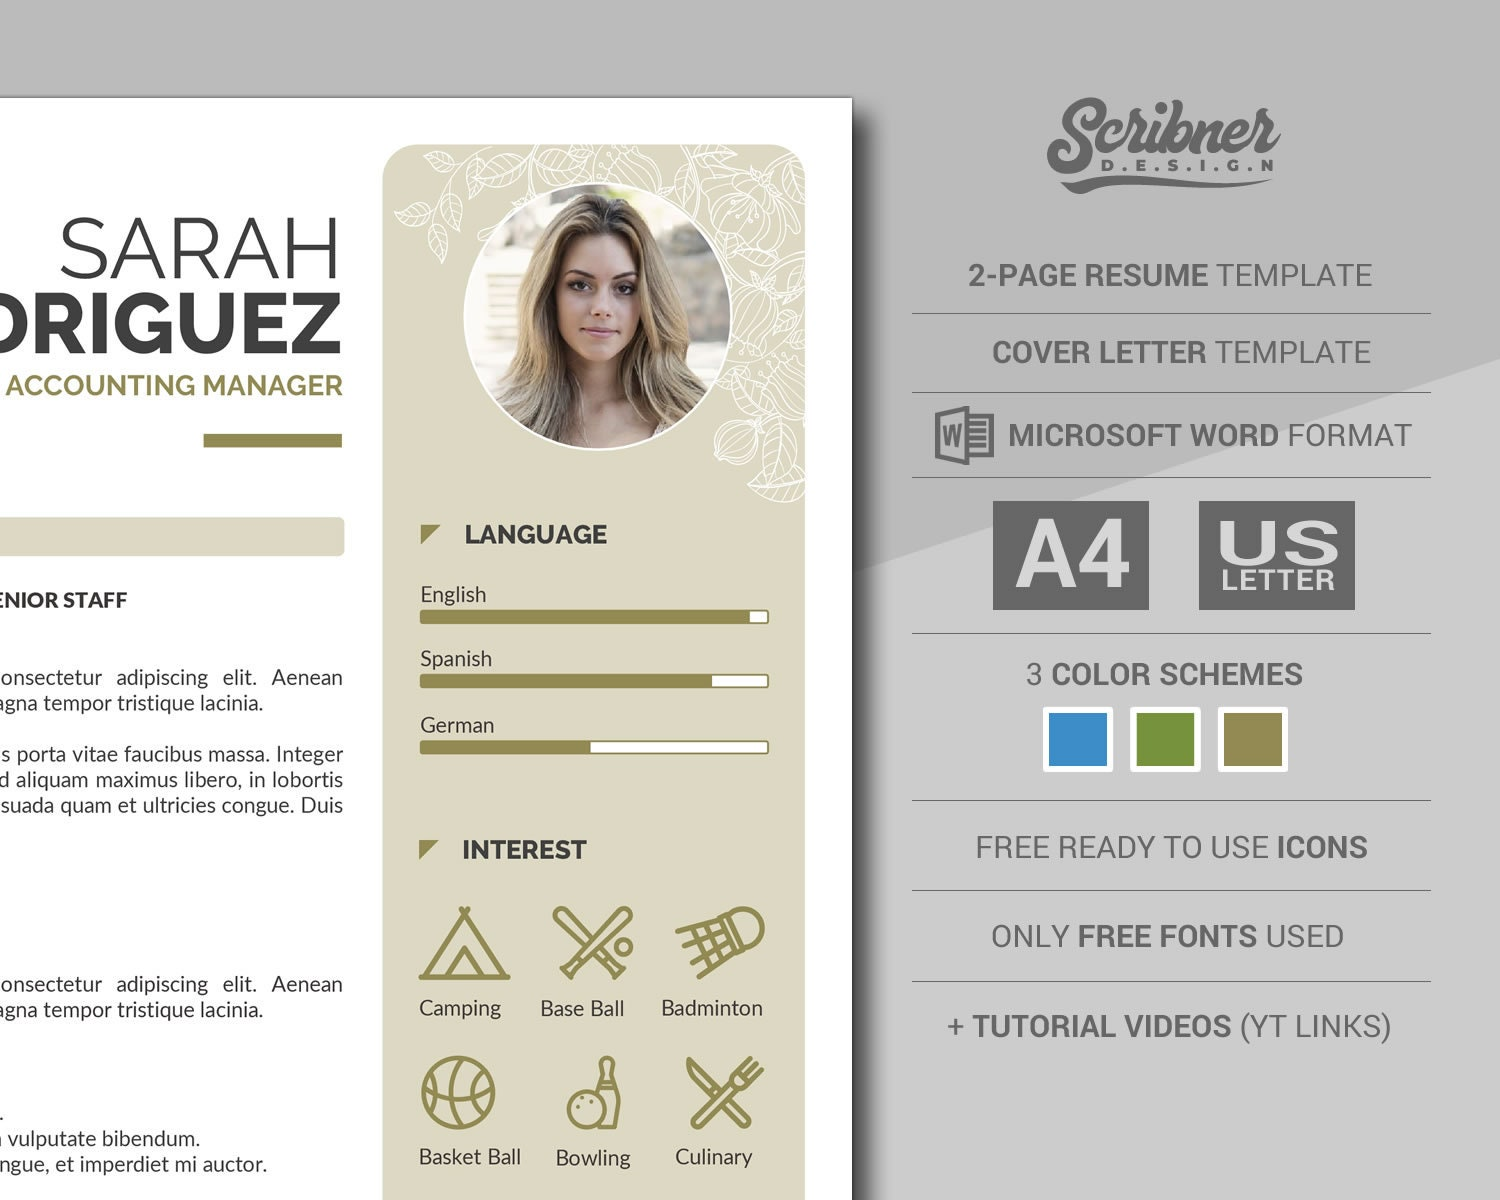 Executive Word Resume Template / CV Template with Cover Letter | 2-Page  Professional Resume with Photo, in 3 Color Themes, Instant Download